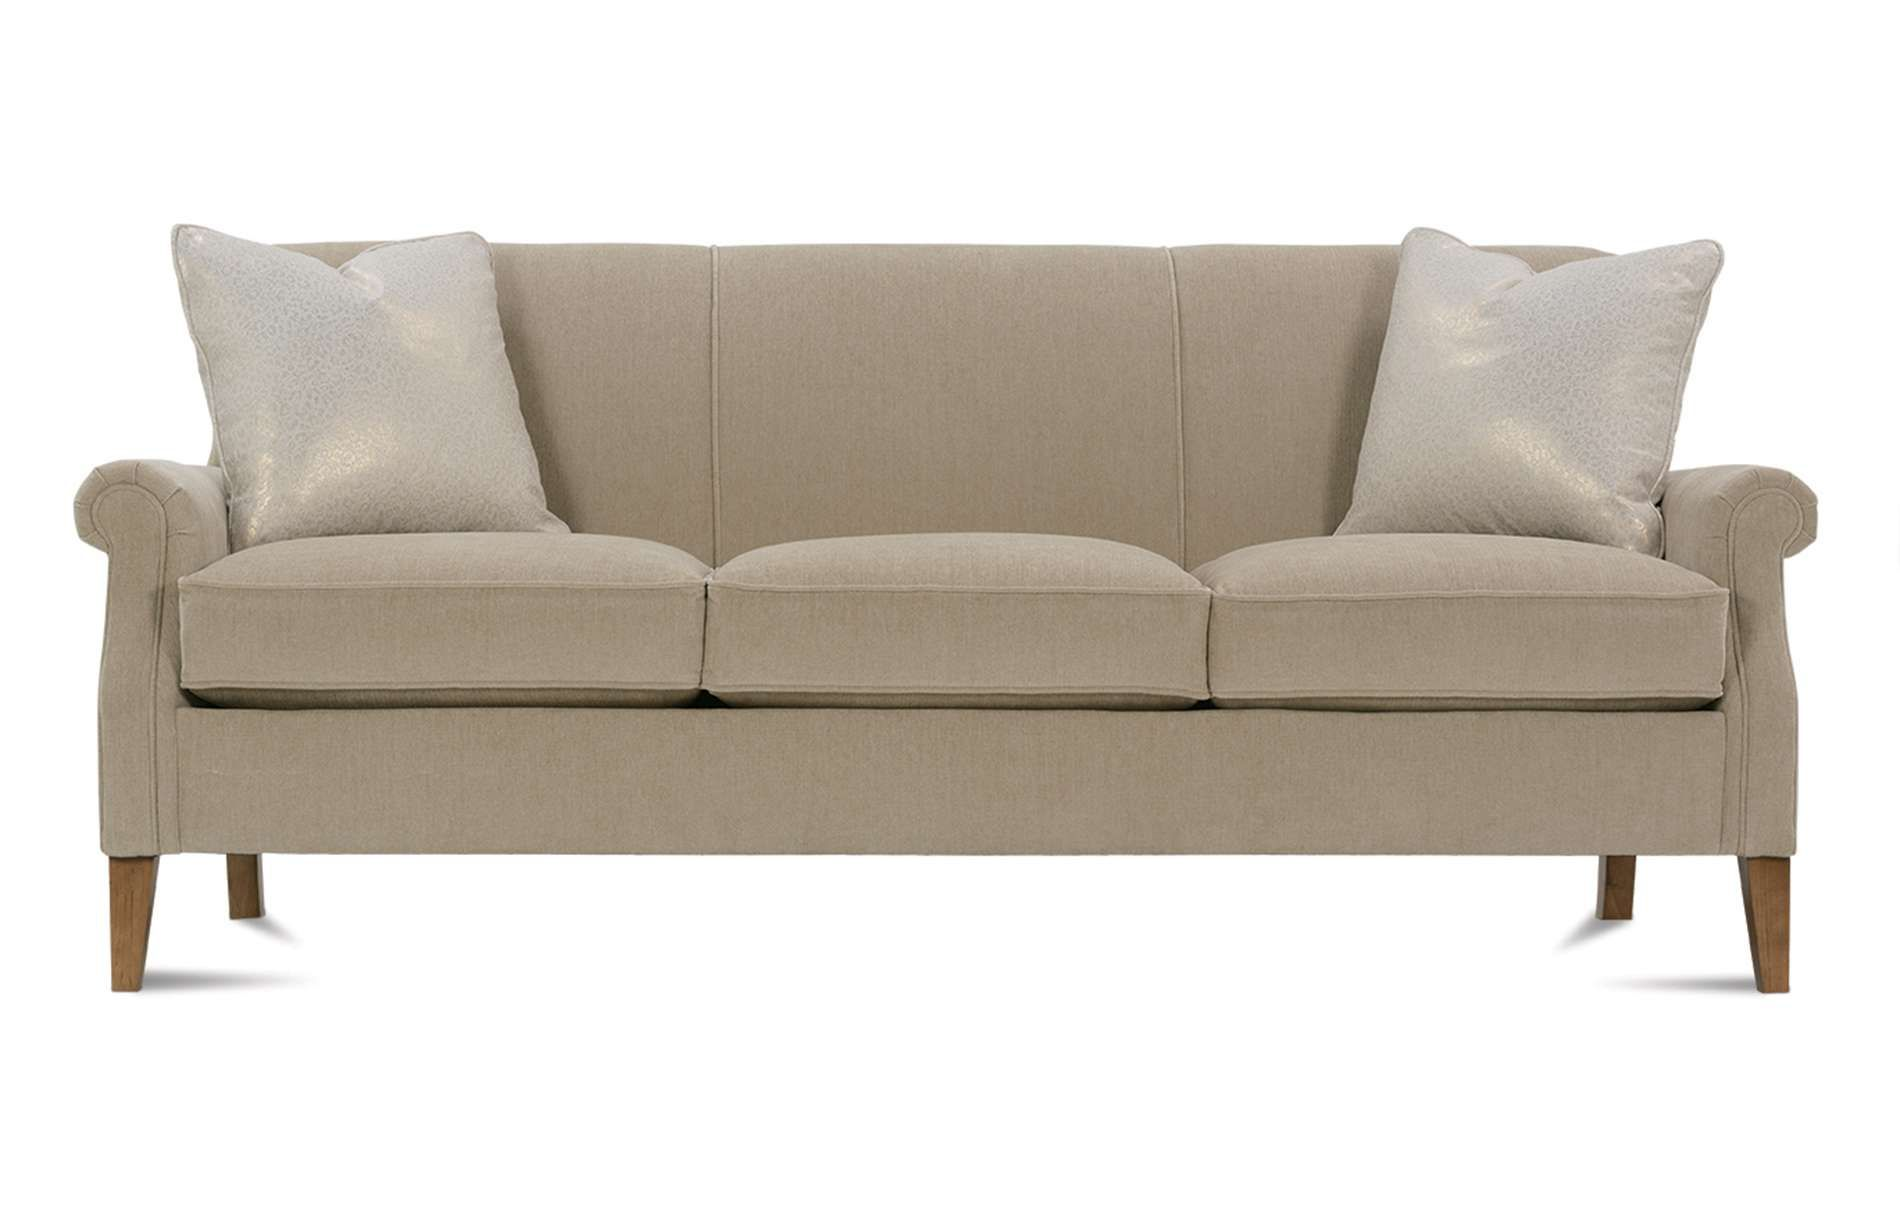 Amazing The Channing Sofa Blends Beauty And Elegance With Itu0027s Simple Yet Modern  Design. With Top Of The Line Upholstery, Itu0027s The Perfect Addition To Any  Home.